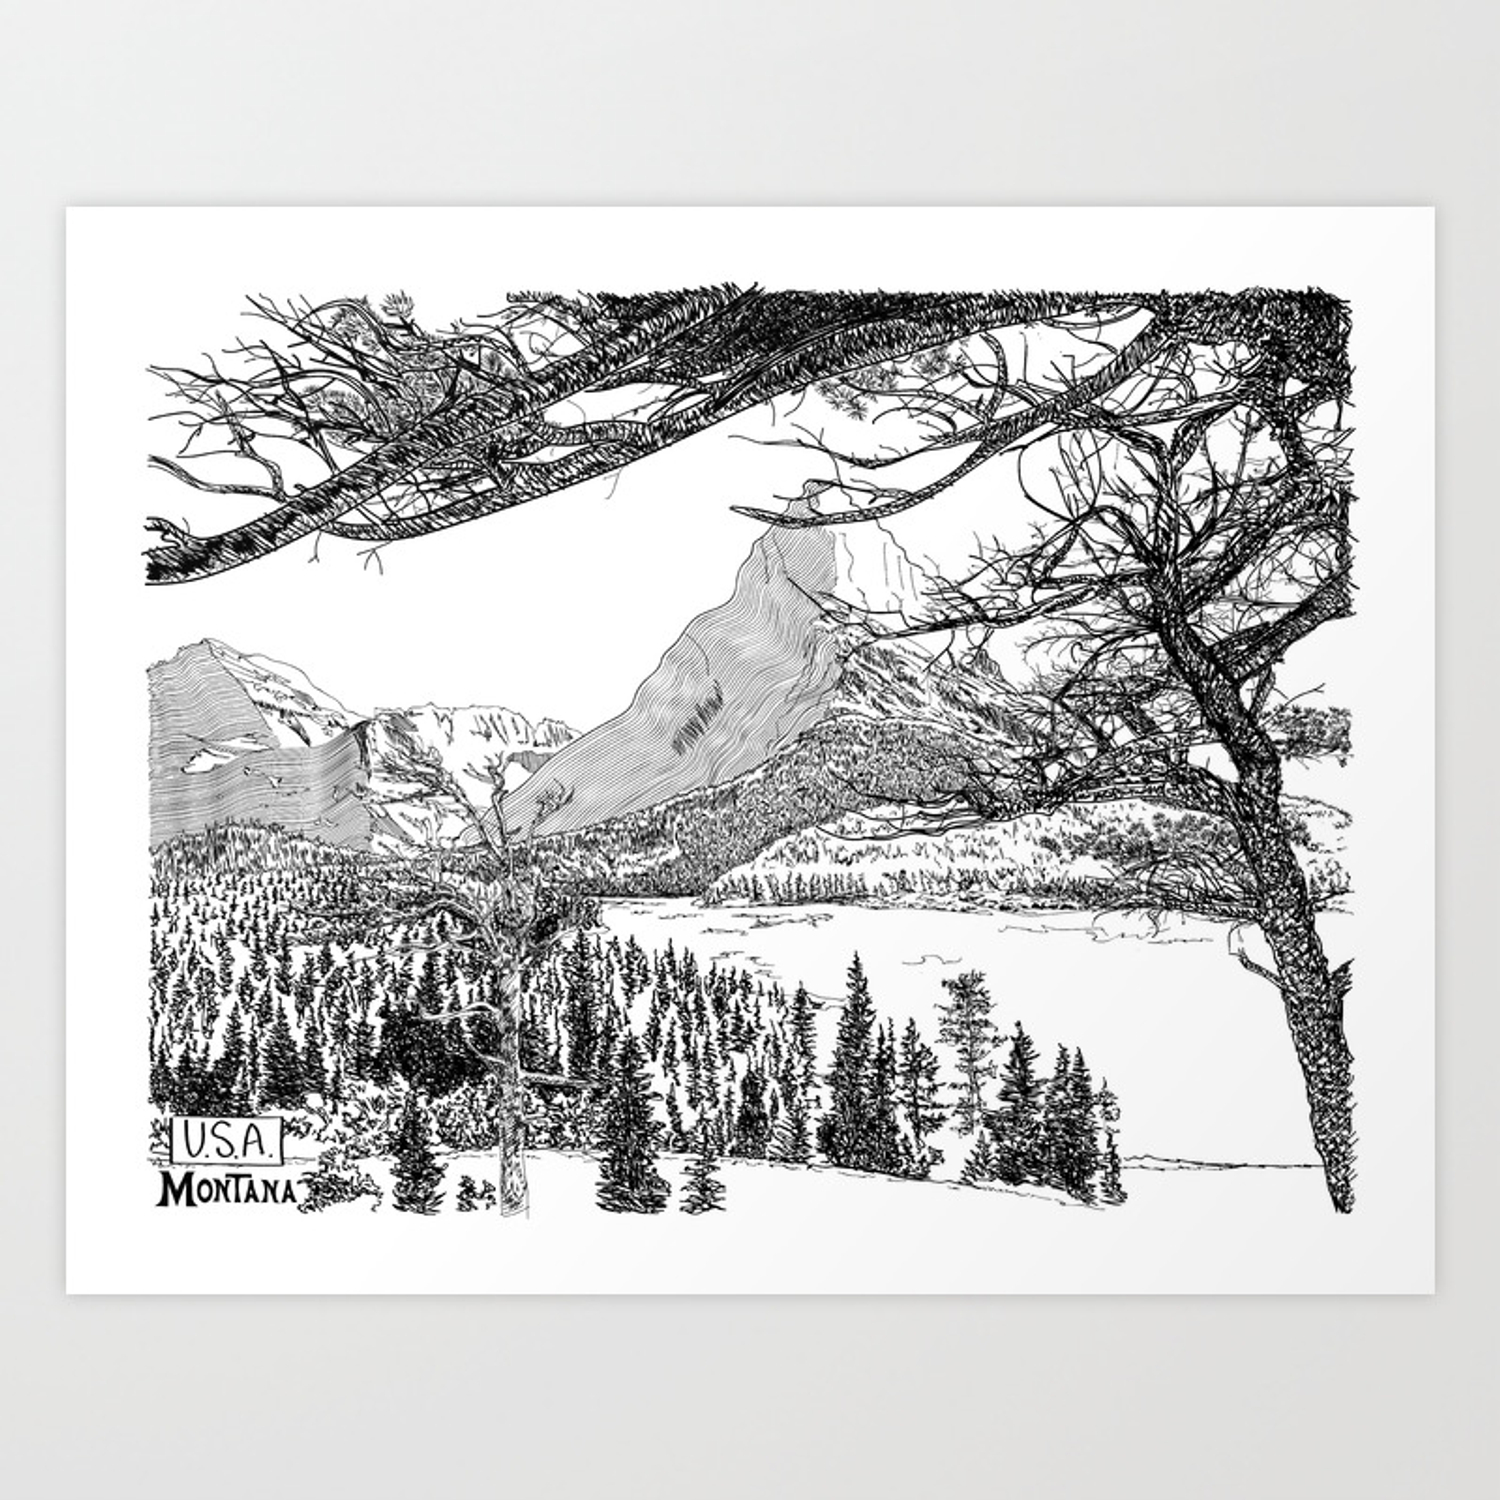 Montana landscape black and white drawing art print